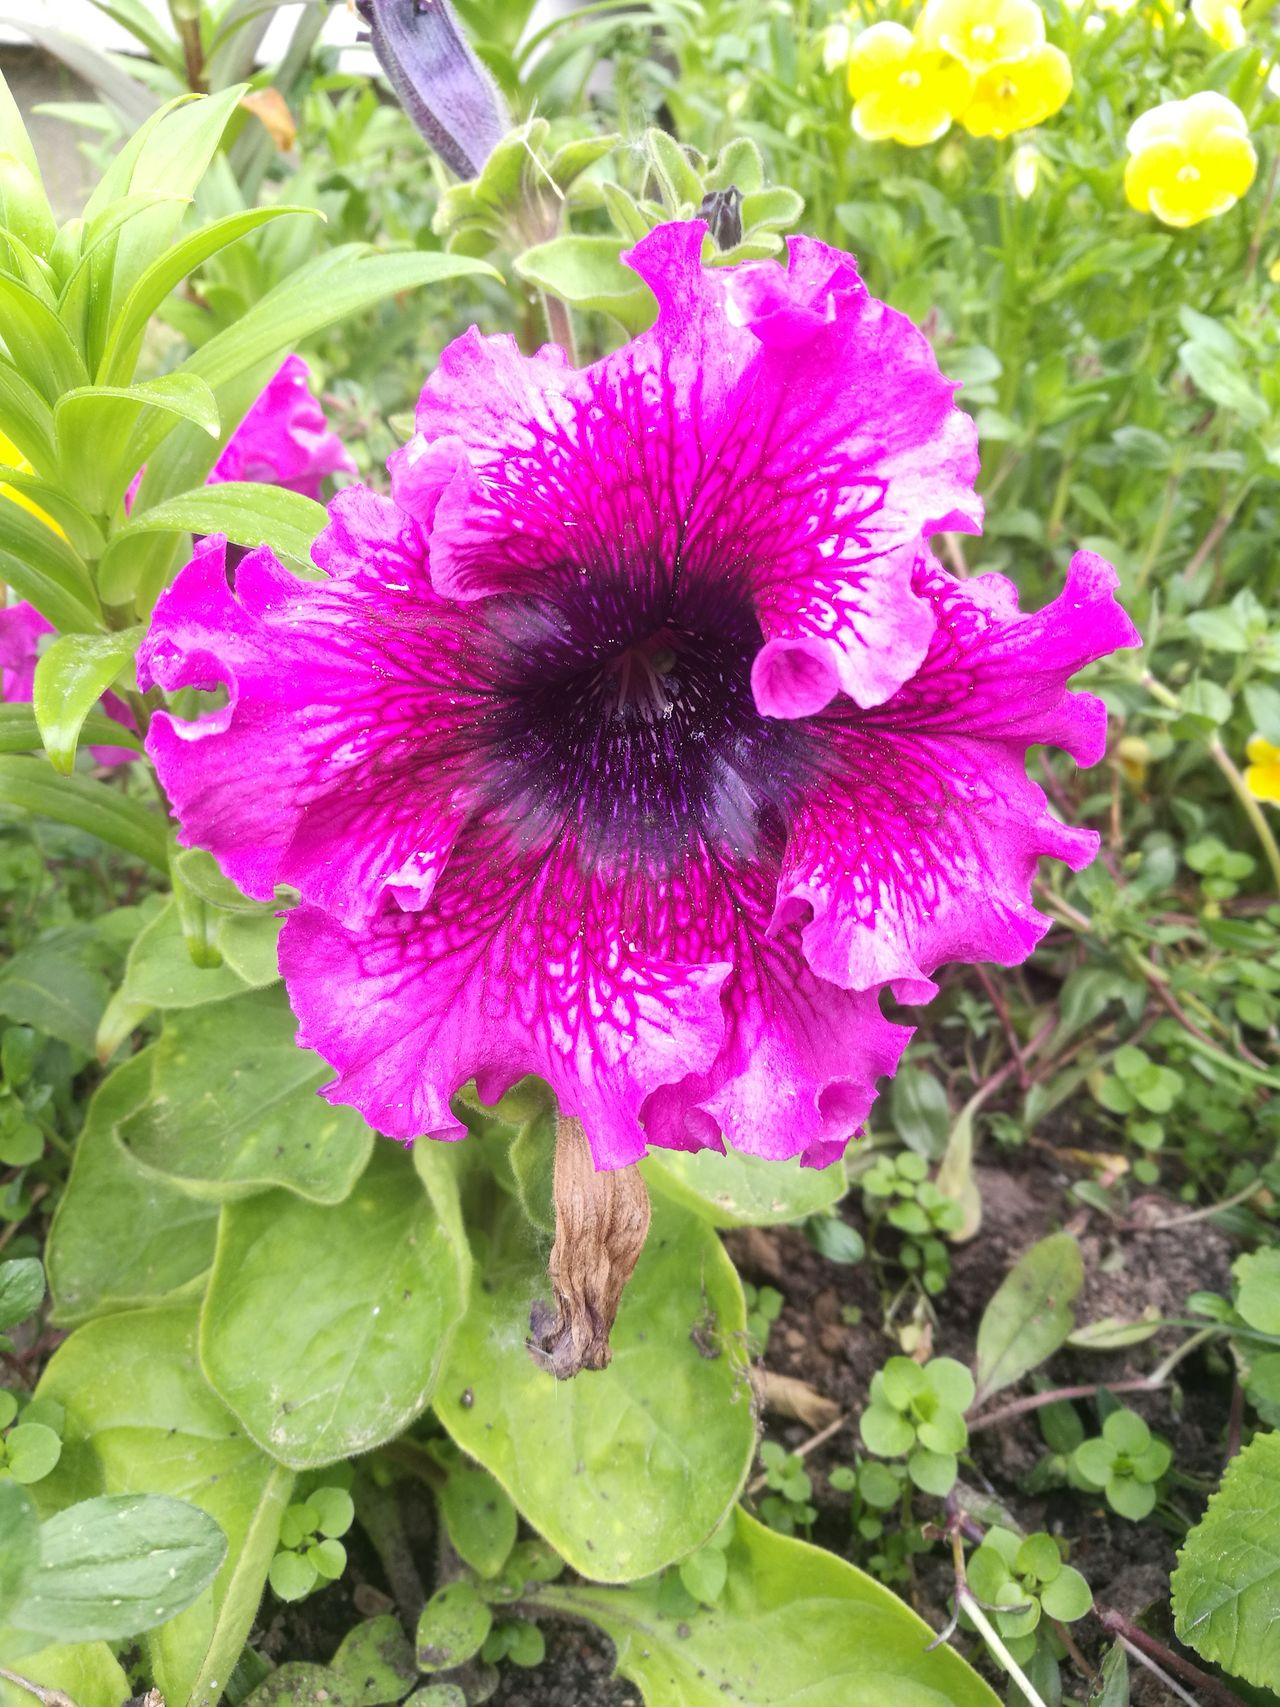 Flower Fragility Plant Nature Growth Petal Beauty In Nature Freshness Day Flower Head Outdoors Purple No People Close-up Blooming Petunia